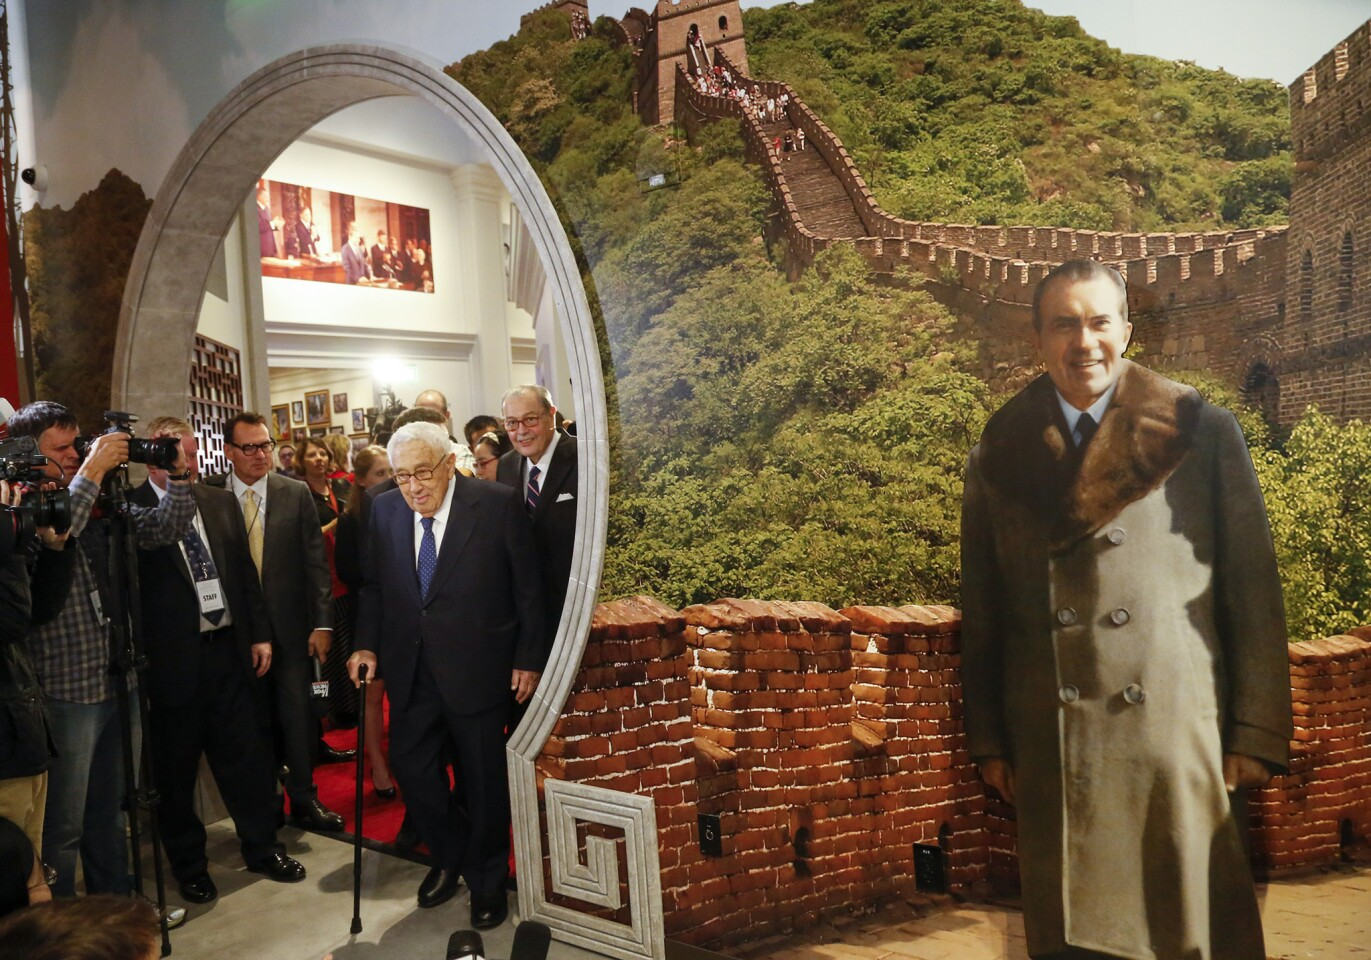 Former Secretary of State Henry Kissinger enters an exhibit in the Richard Nixon Presidential Library and Museum in Yorba Linda where guests can pose with a life-size backdrop of Nixon in front of the Great Wall of China.